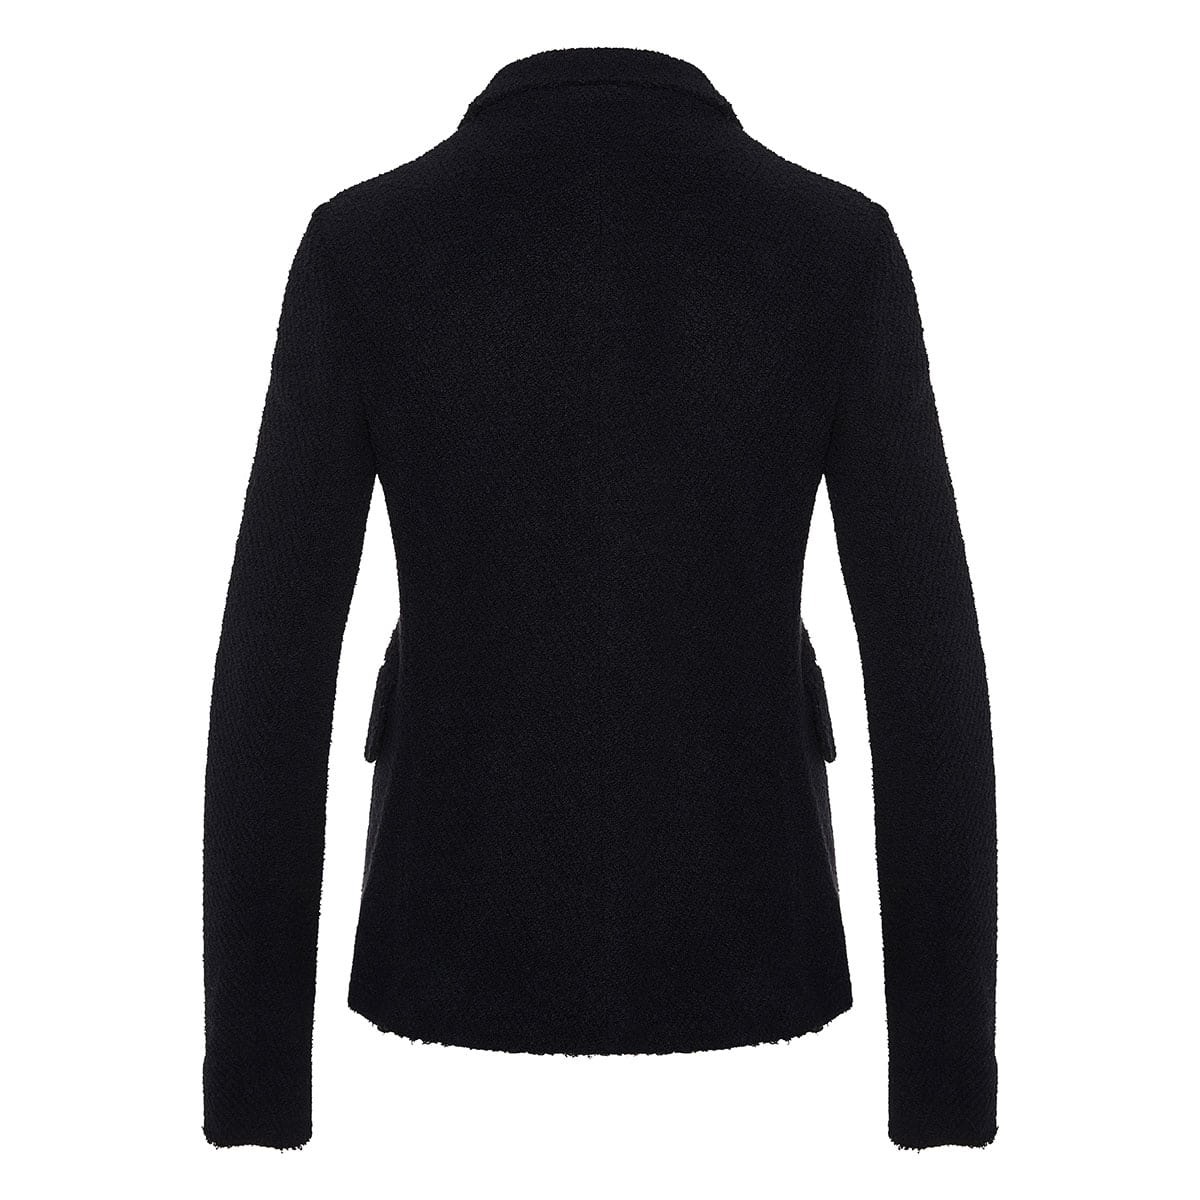 Annica boucle jacket